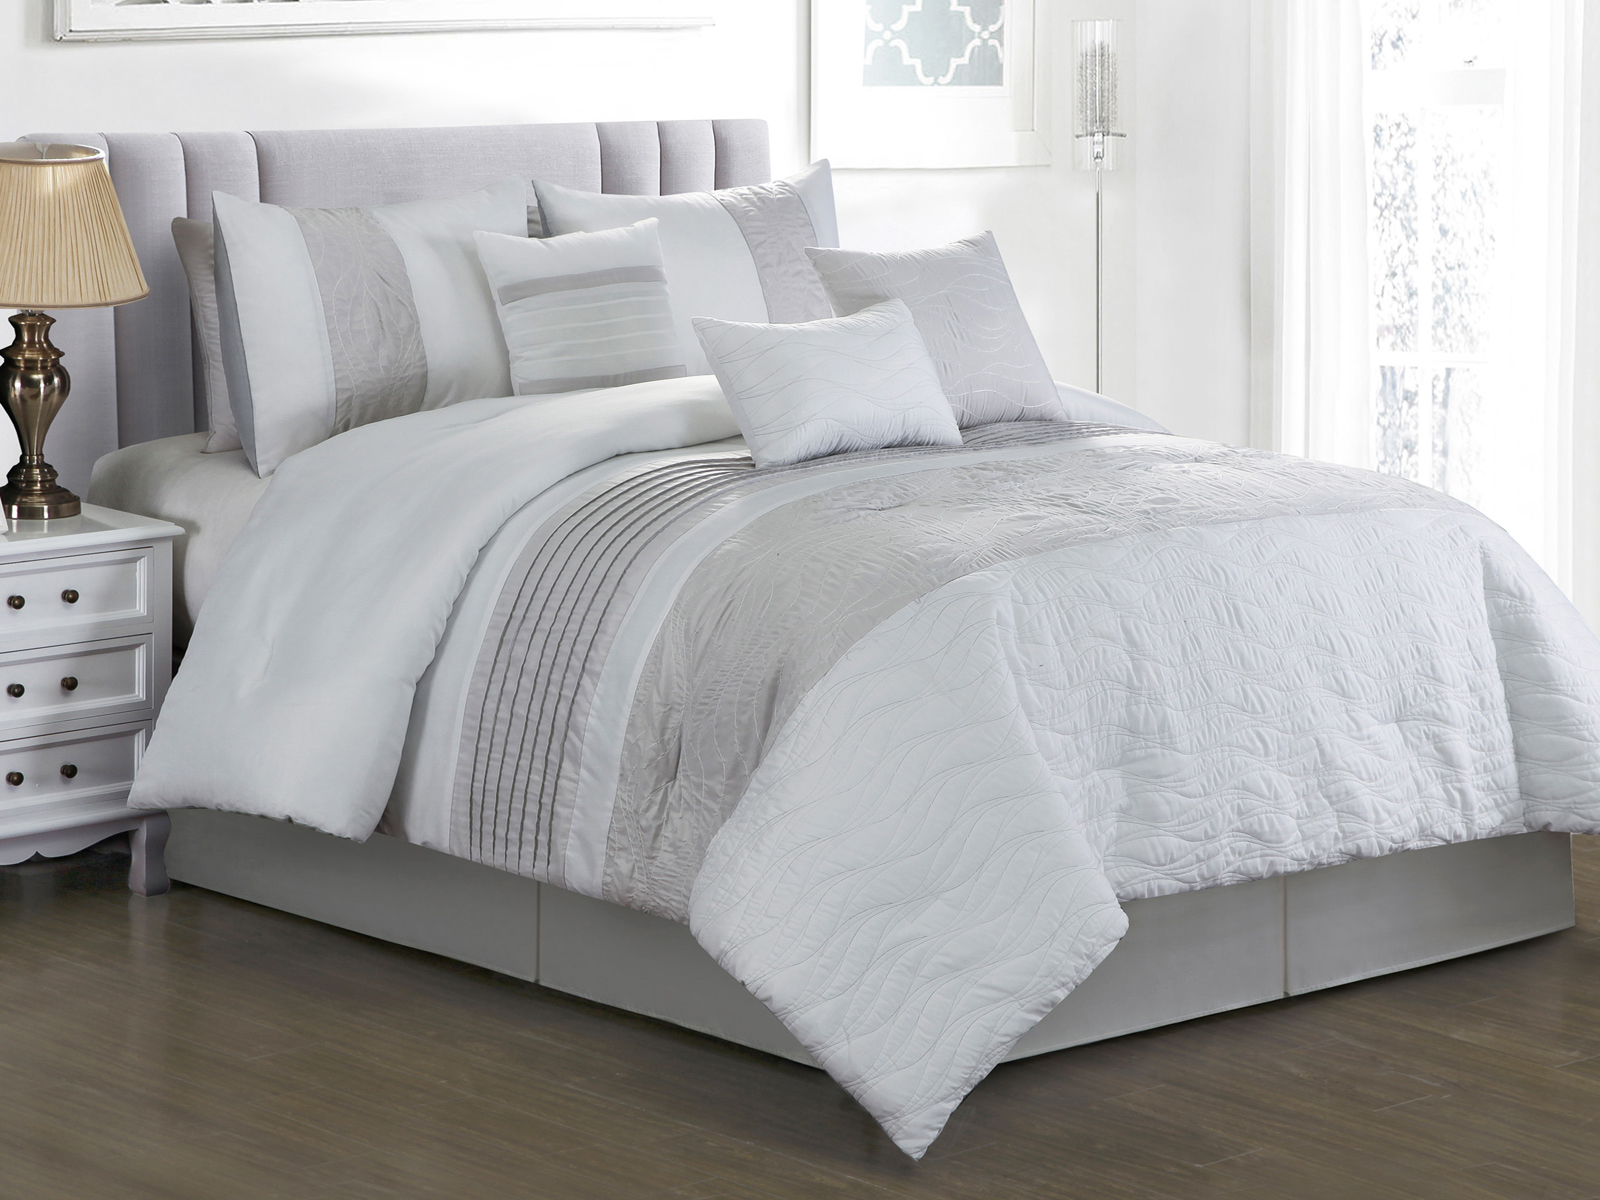 7 Pc Keani Quilted Abstract Wavy Lines Embroidery Comforter Set White Gray Queen 655881354379 Ebay